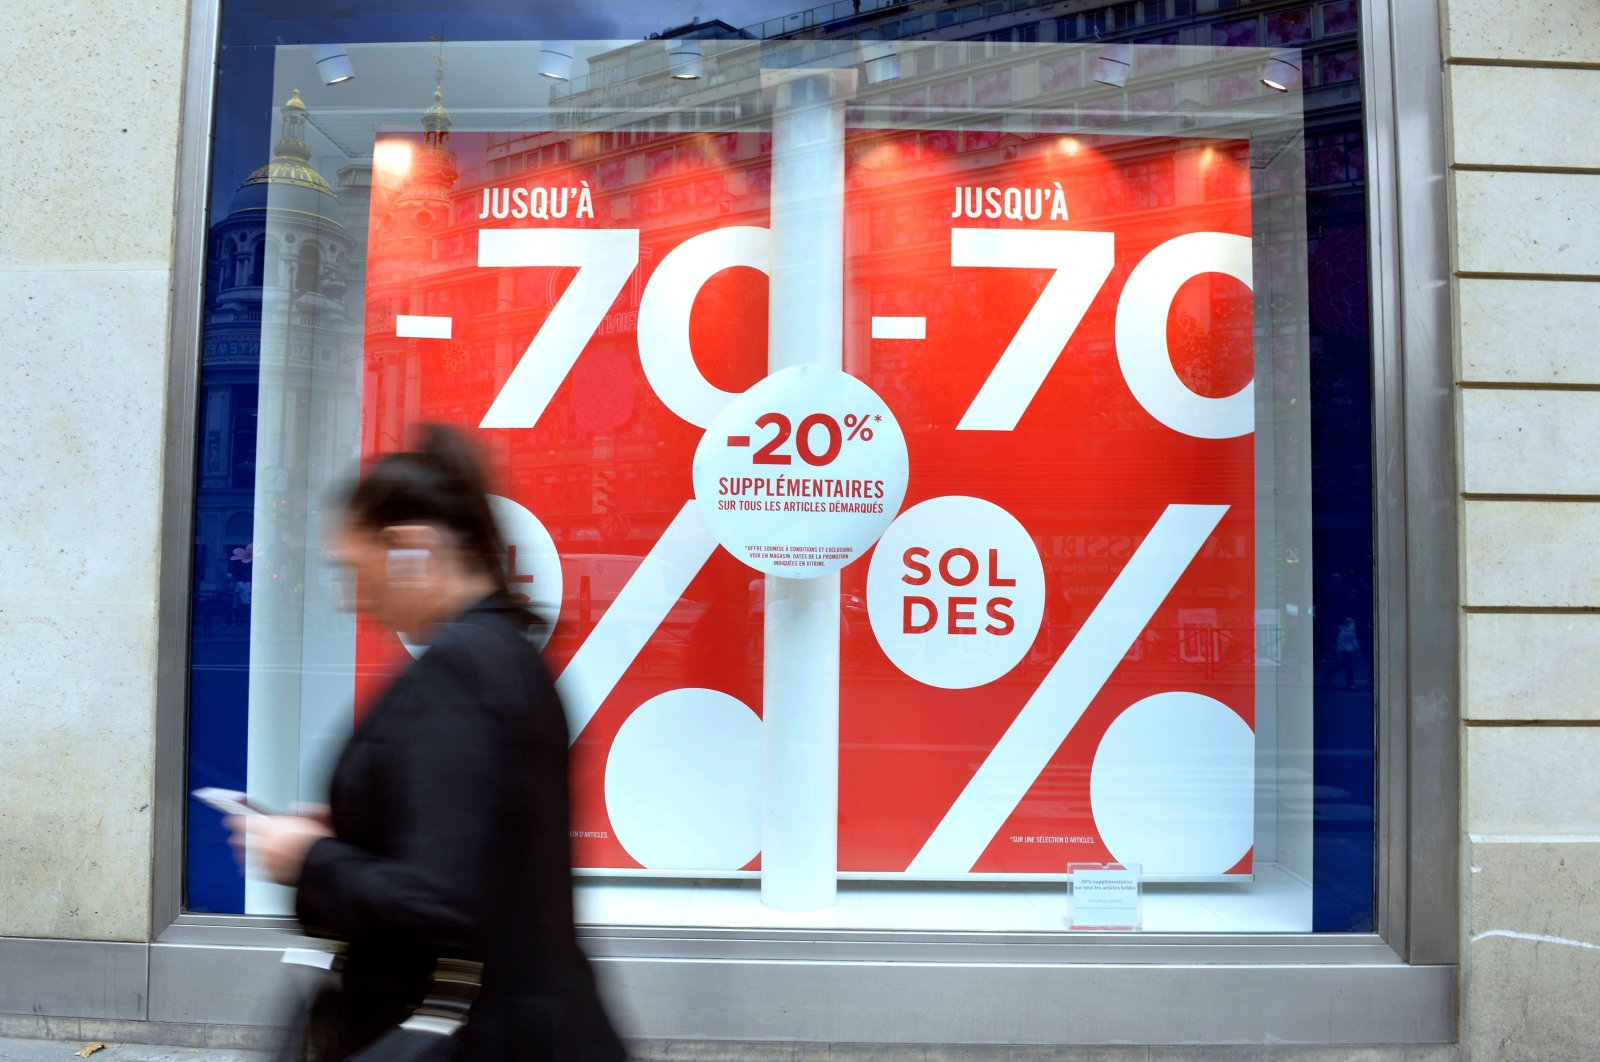 A woman walks past a storefront advertising last-day-of-summer sales, in Paris, France, Aug. 4, 2015. (AFP Photo)